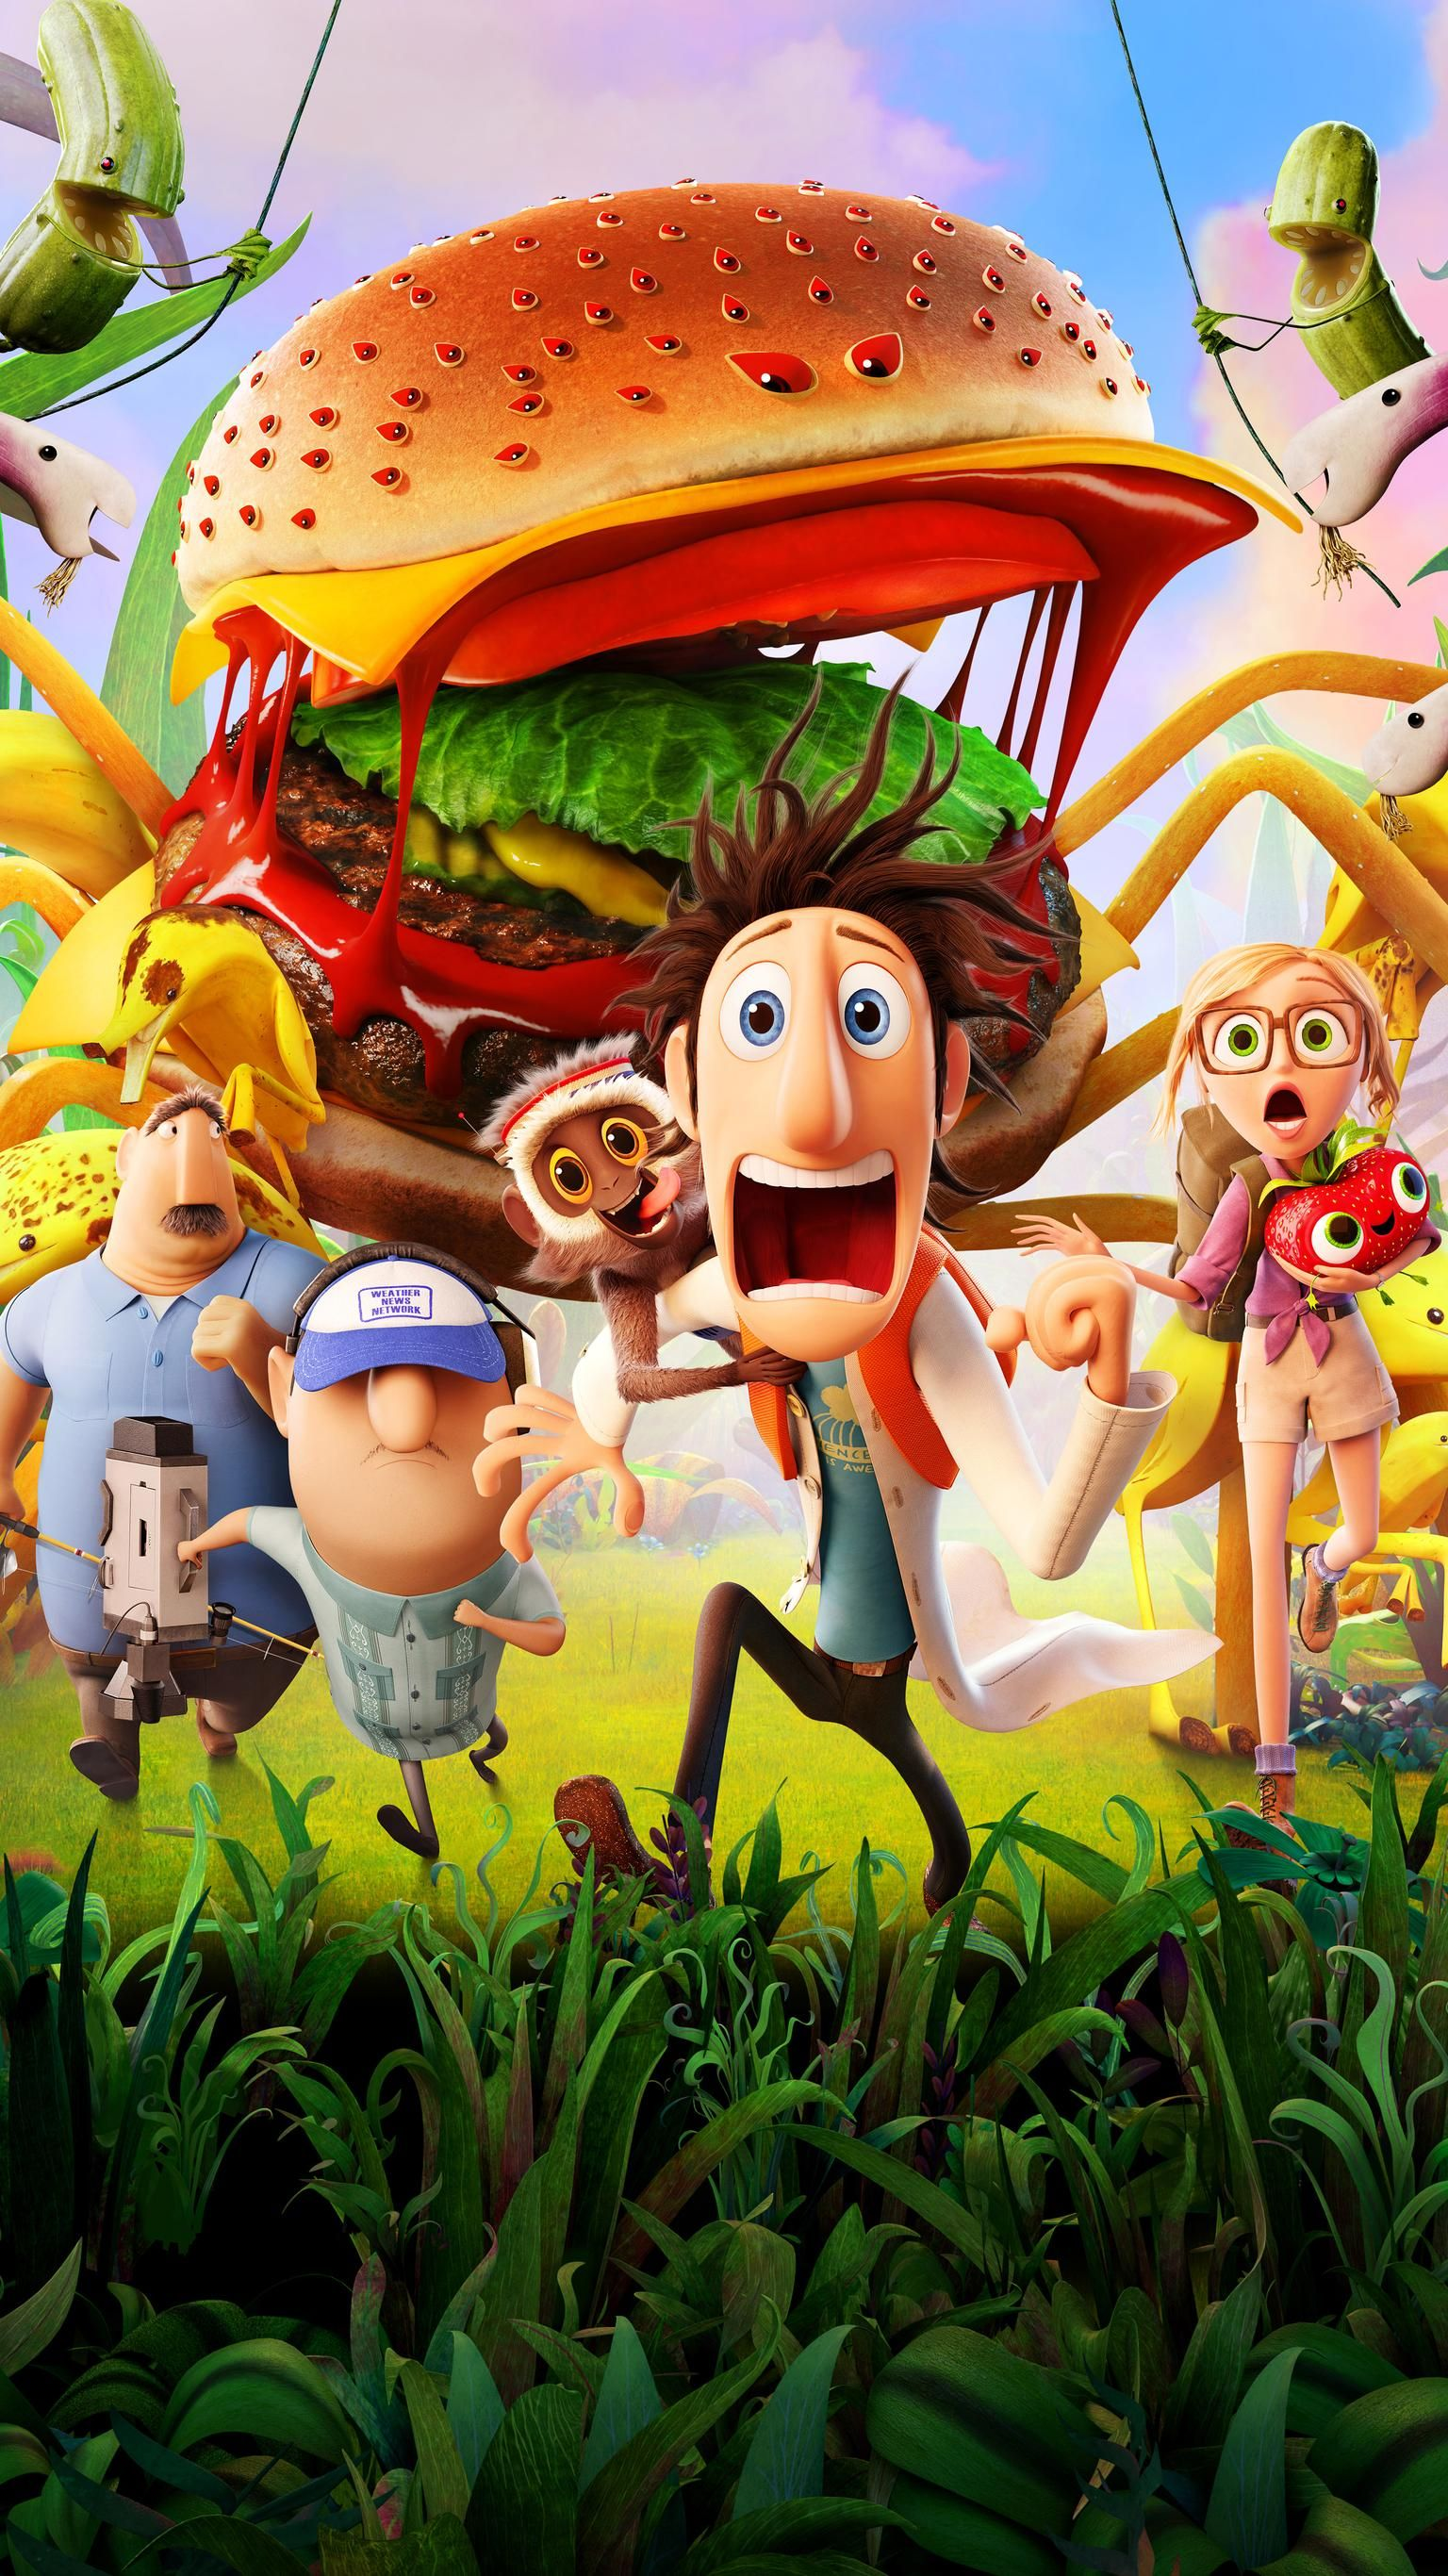 Cloudy With A Chance Of Meatballs 2 2013 Phone Wallpaper Moviemania Animated Movies For Kids Cartoon Wallpaper Animated Movies